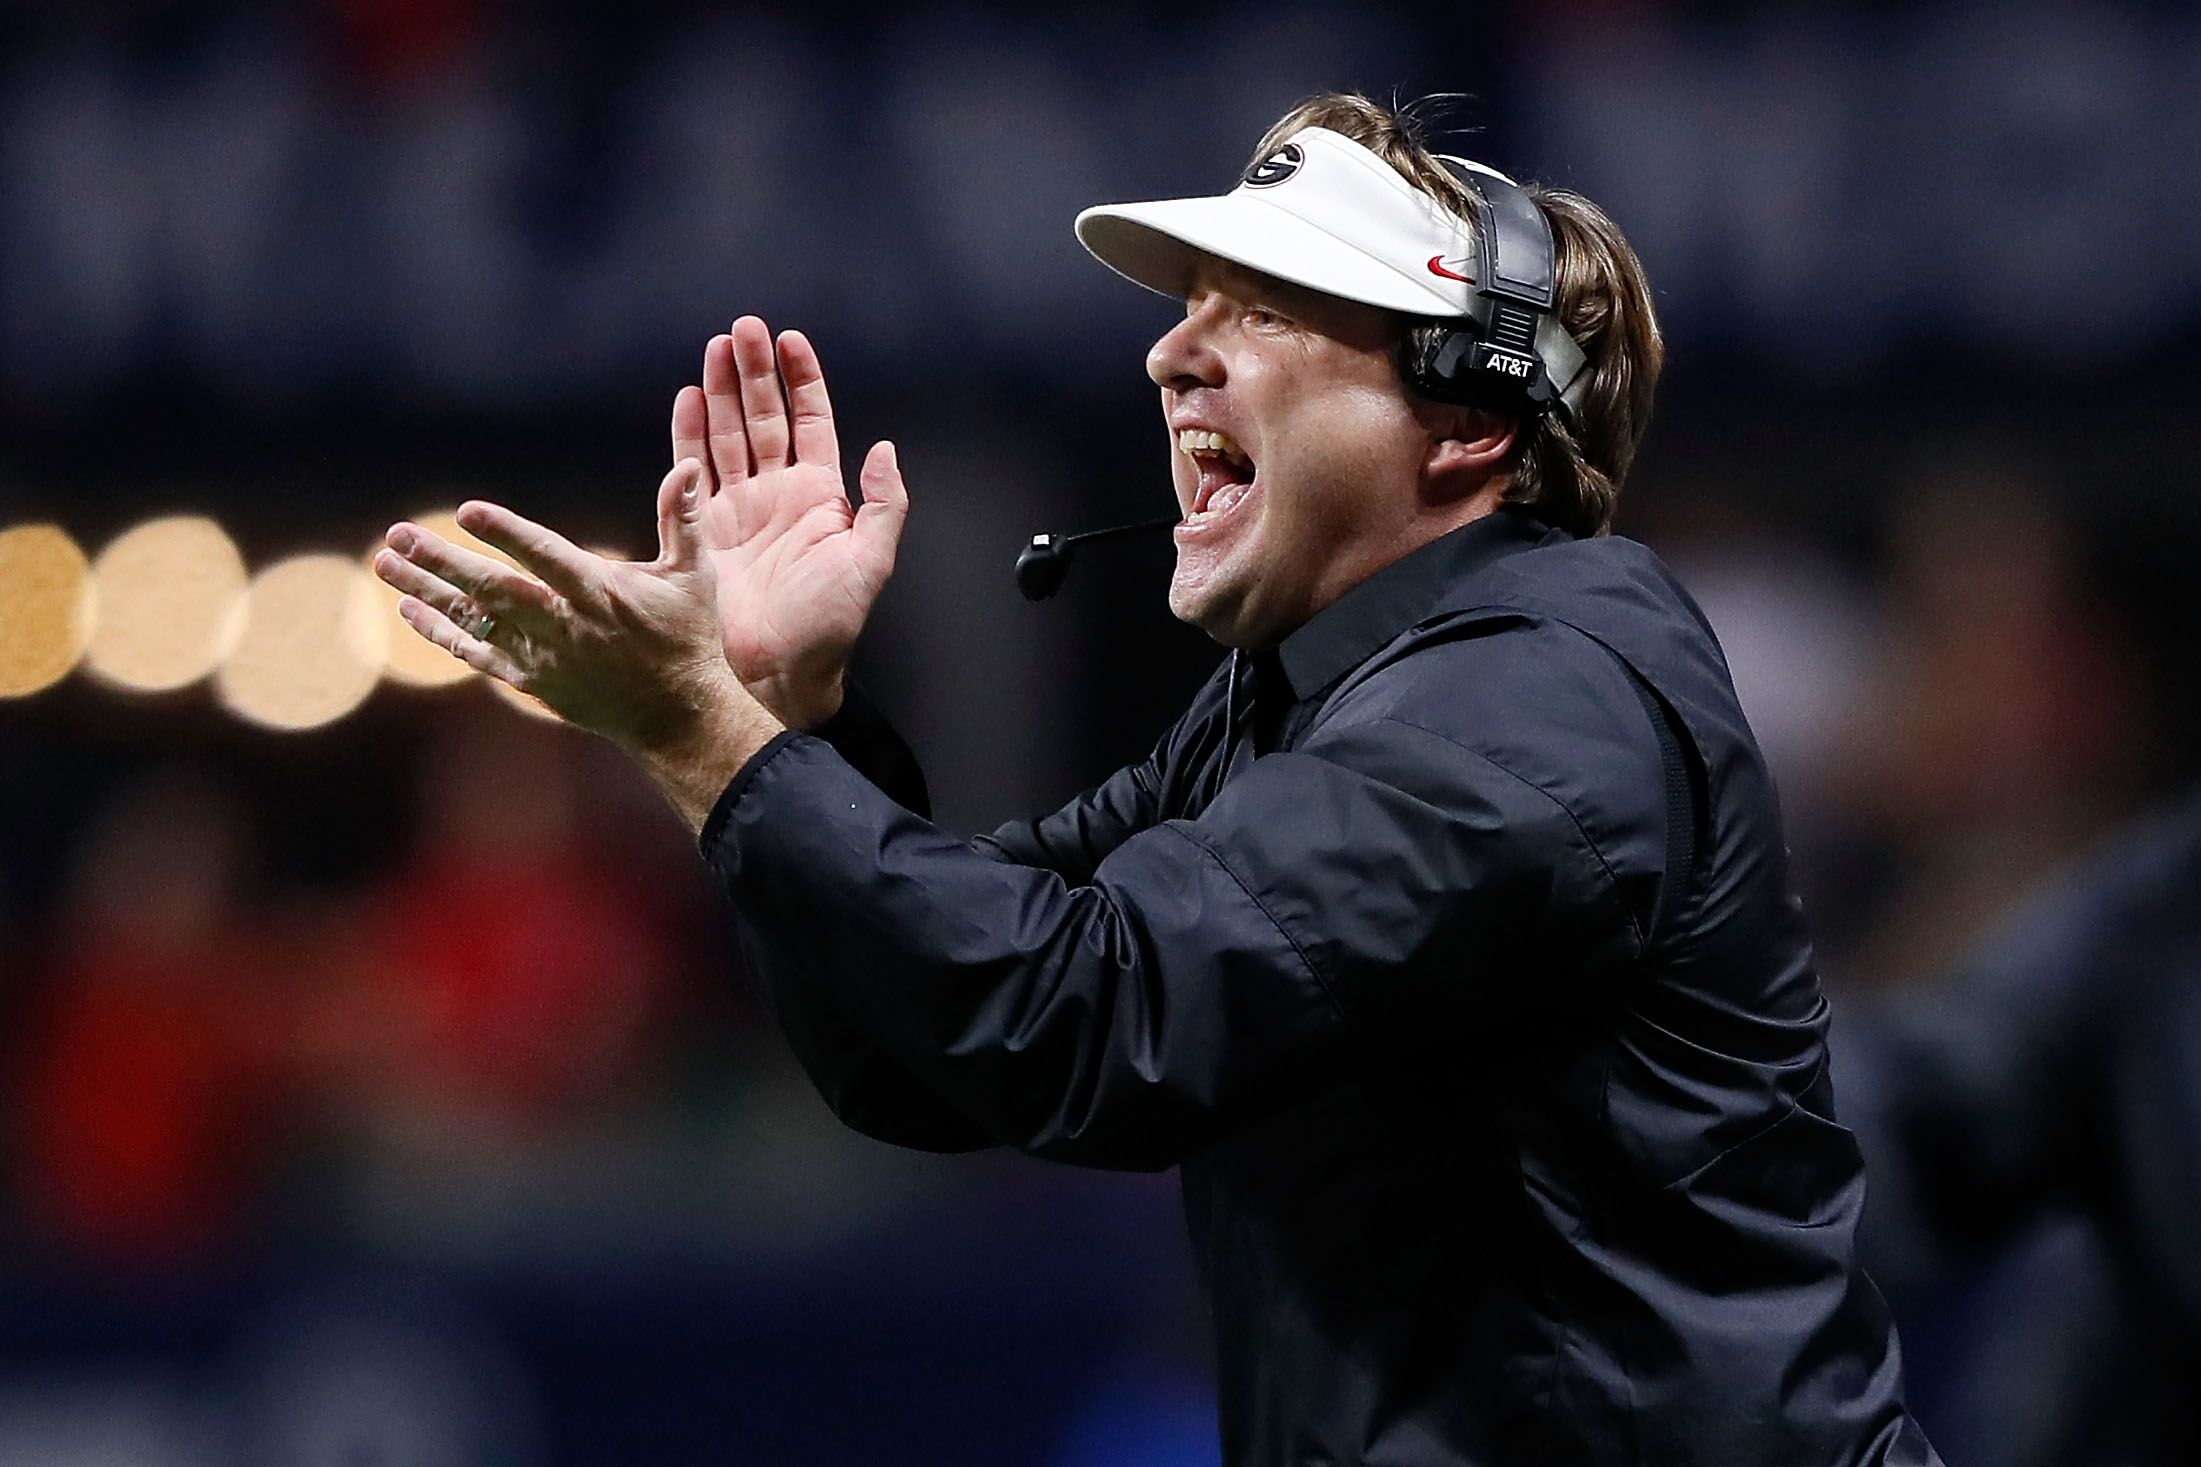 Georgia Bulldogs 2017 Sec Champions >> Georgia Football: How hiring Kirby Smart made UGA a champion